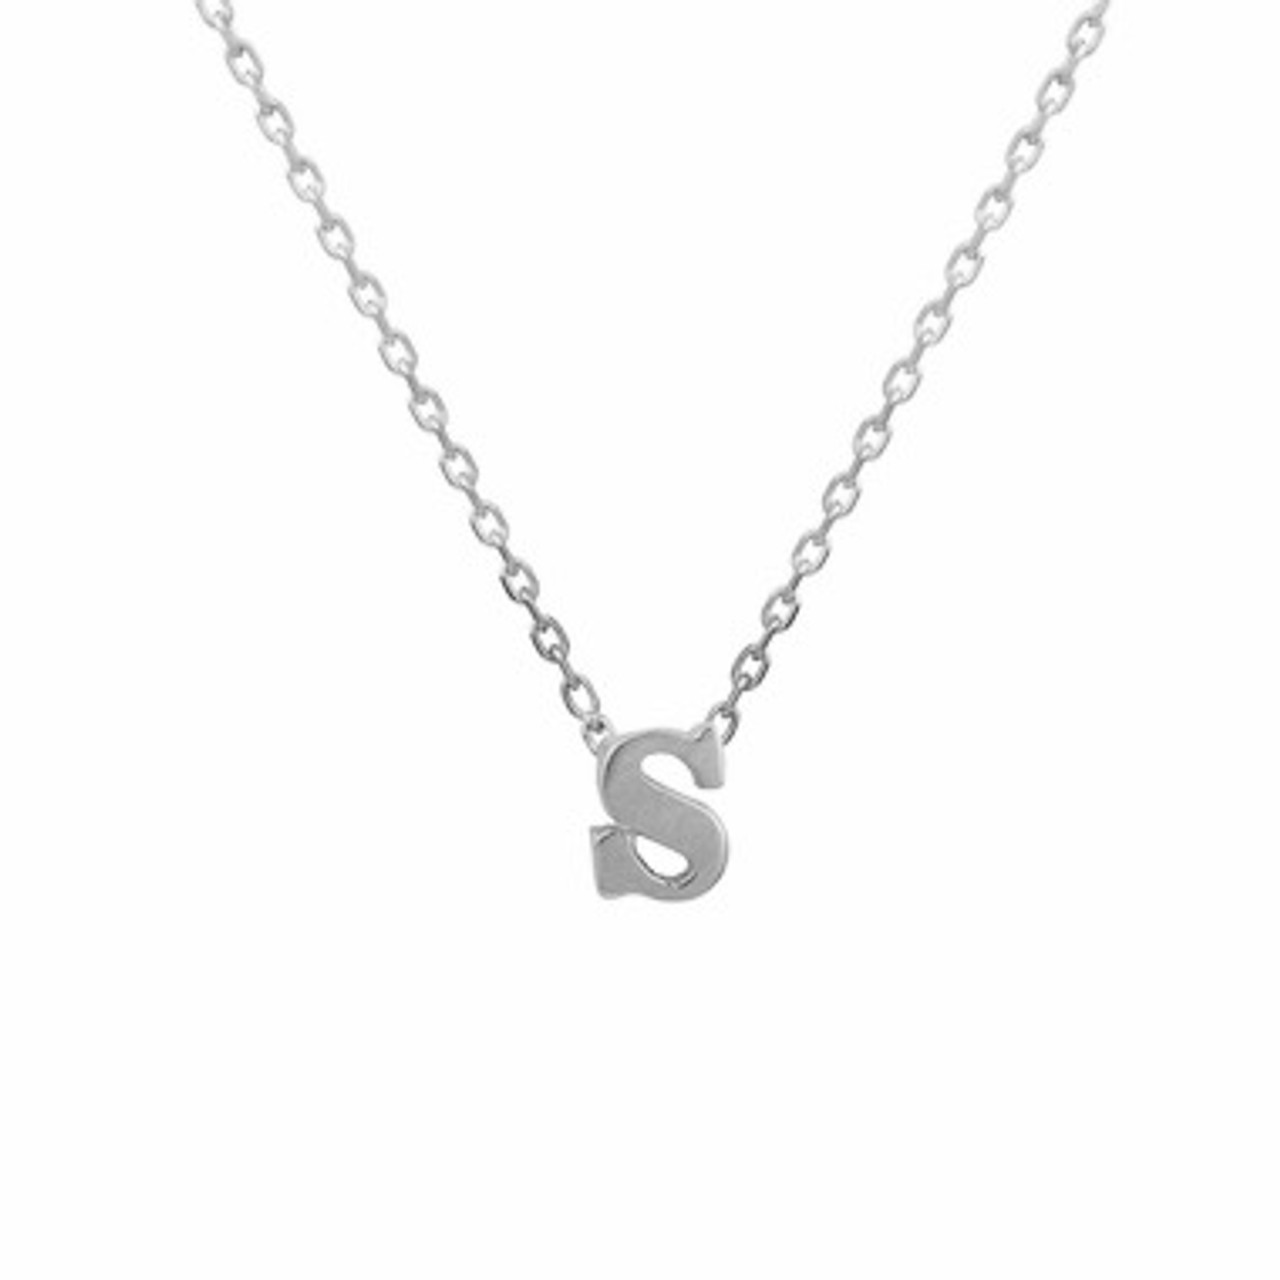 gold necklace Delicate letter necklace Small Letter necklace Tiny necklace 925 sterling silver Minimalist gold necklace small letter